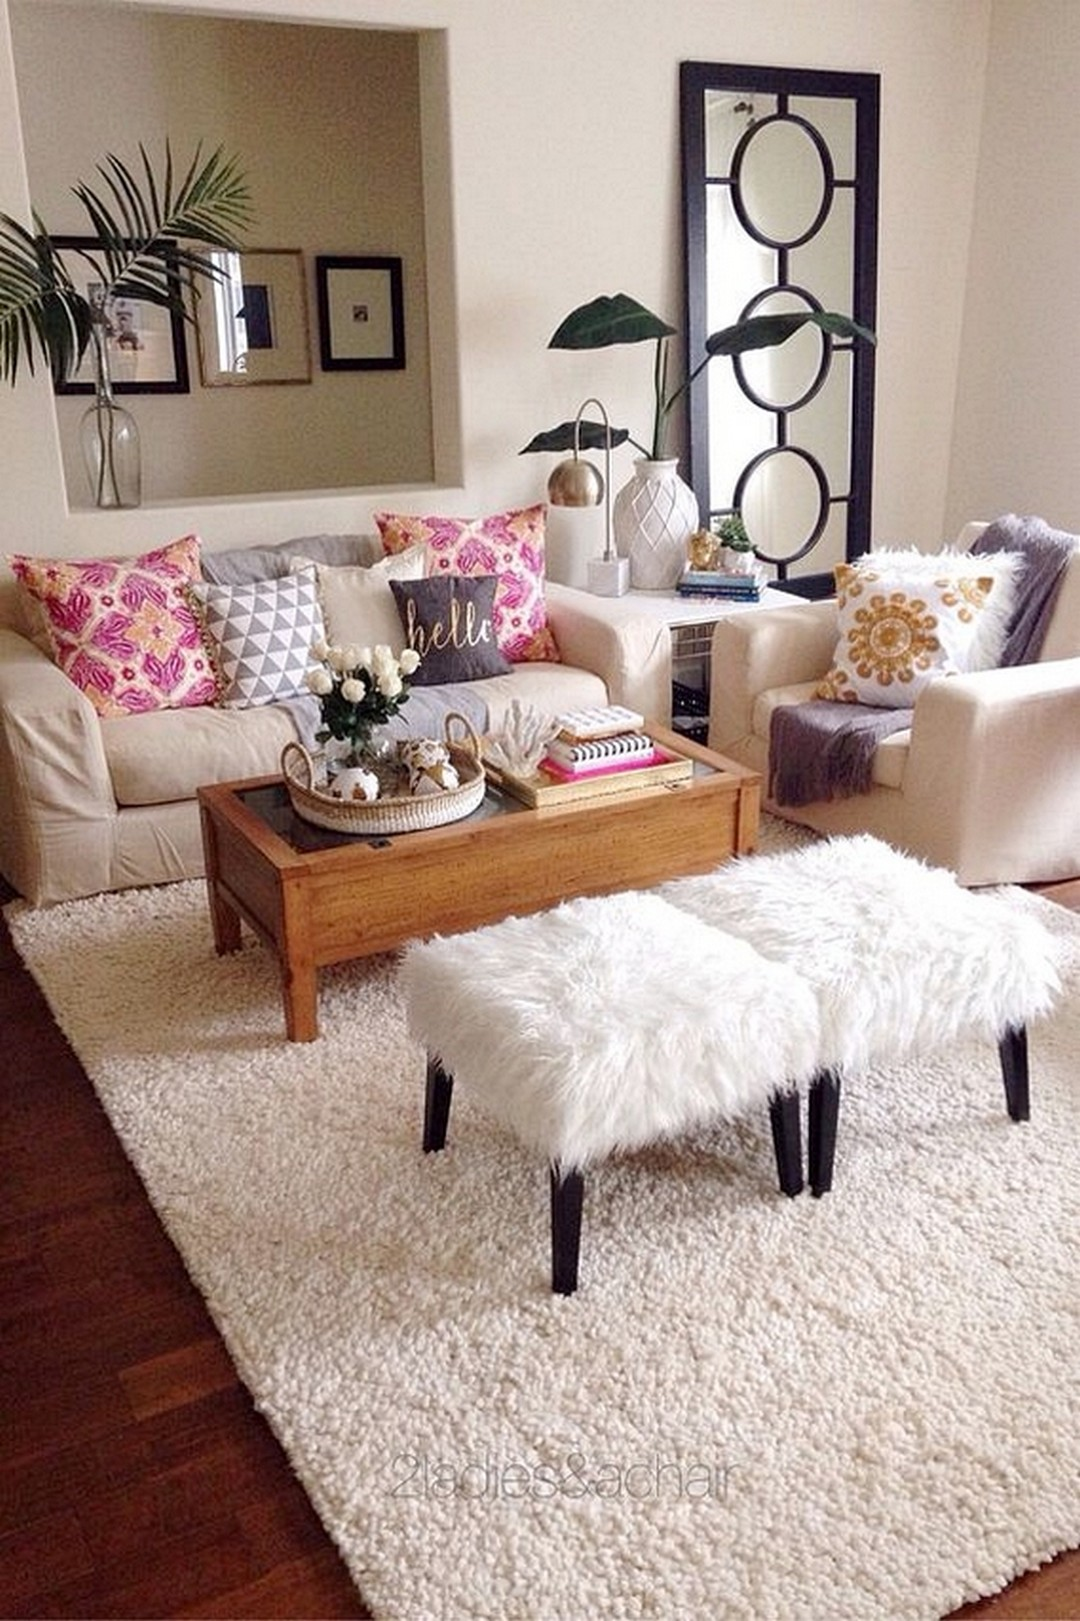 Tips for Furnishing Your Apartment on a Budget